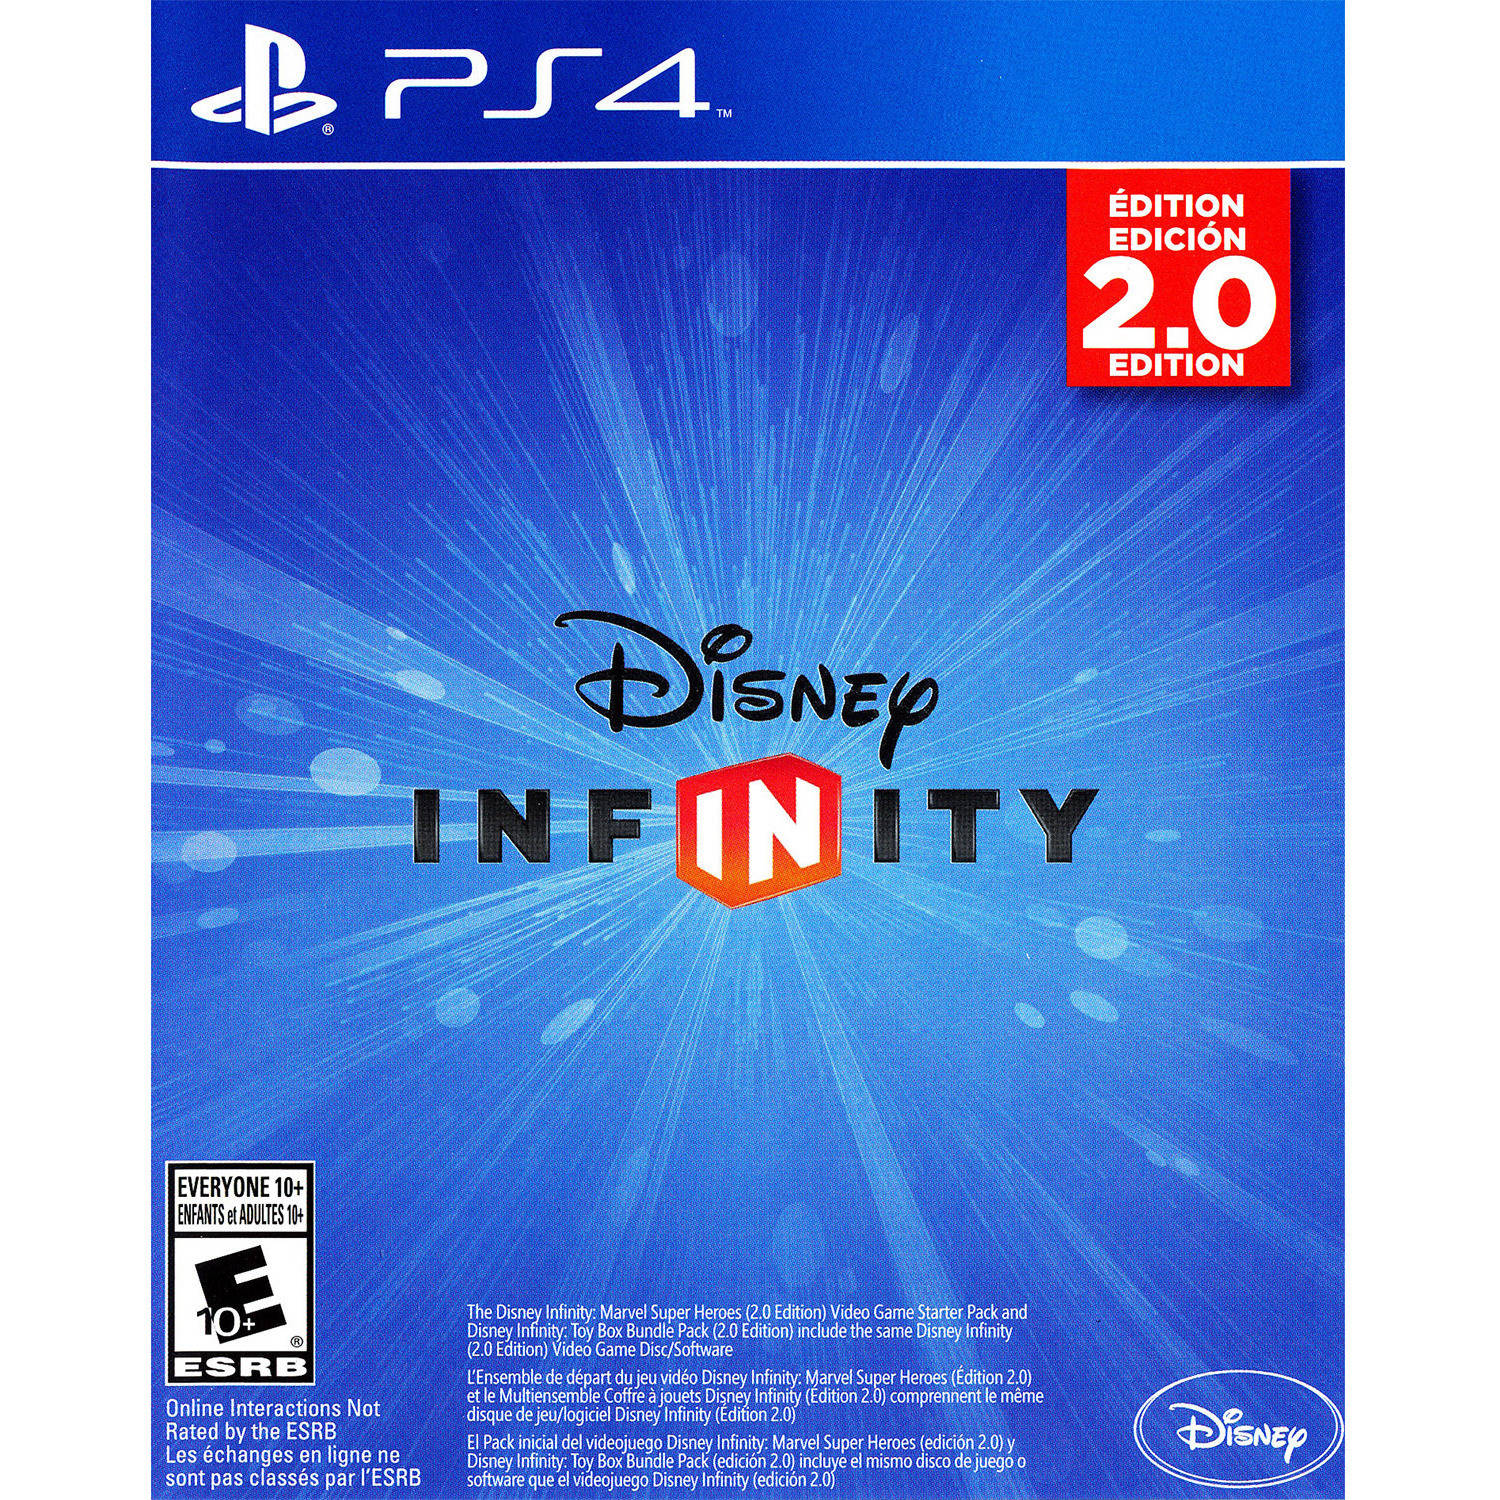 Disney Infinity 2.0 (PS4) - Pre-Owned - Game only